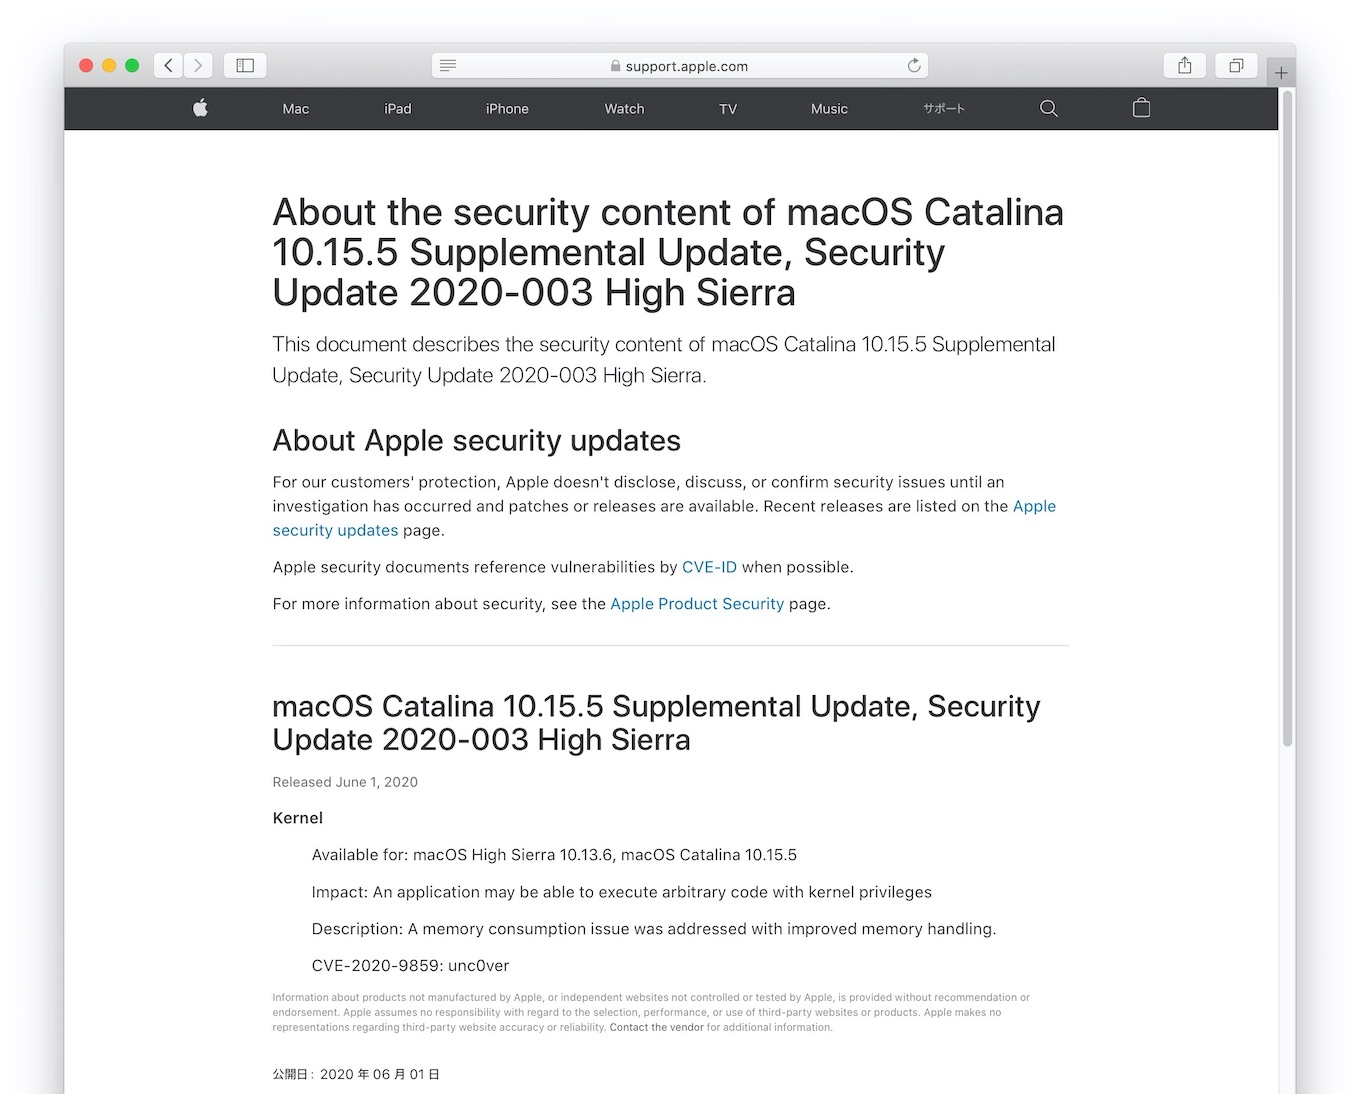 About the security content of macOS Catalina 10.15.5 Supplemental Update